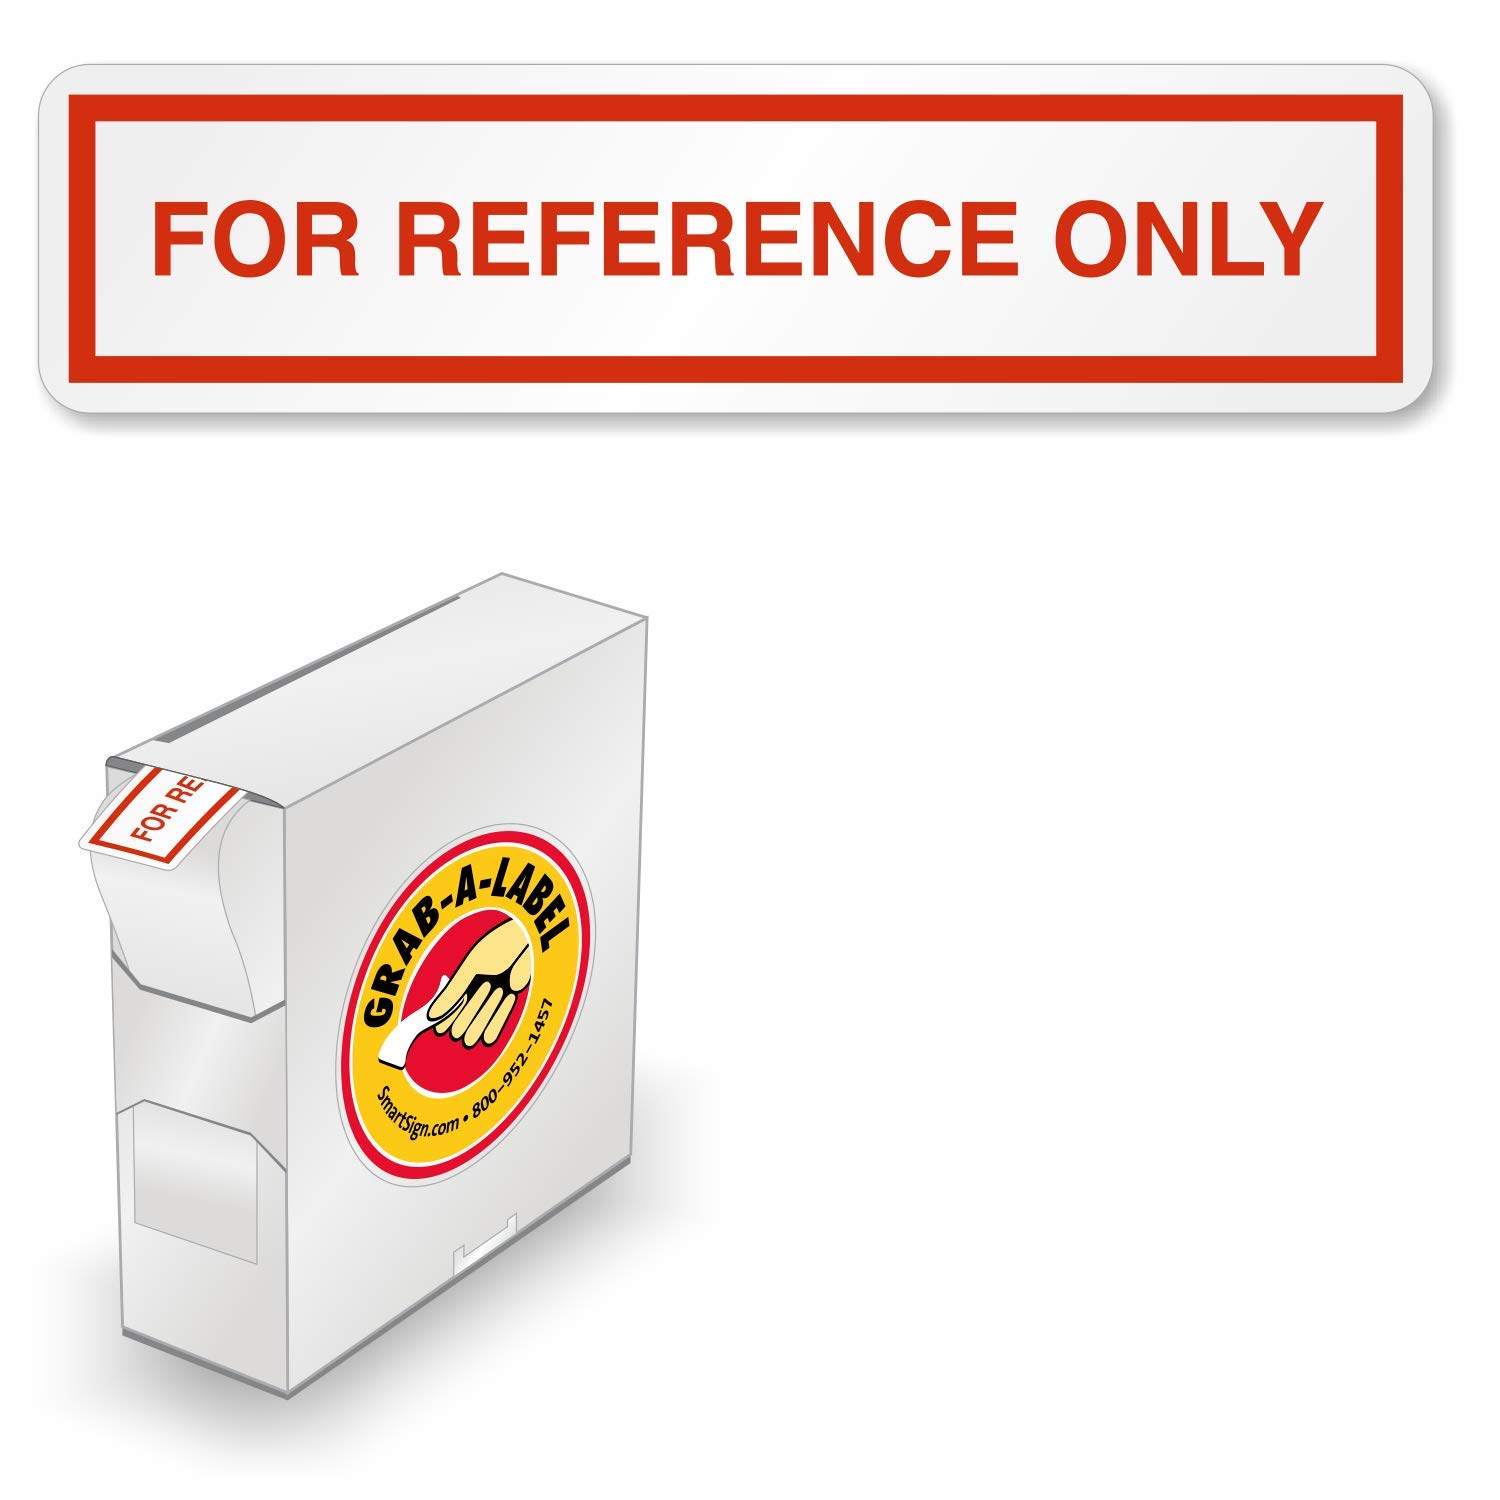 2 x 0.5 Pack of 160 SmartSign/for Reference Only Write-On Vinyl Removable Label